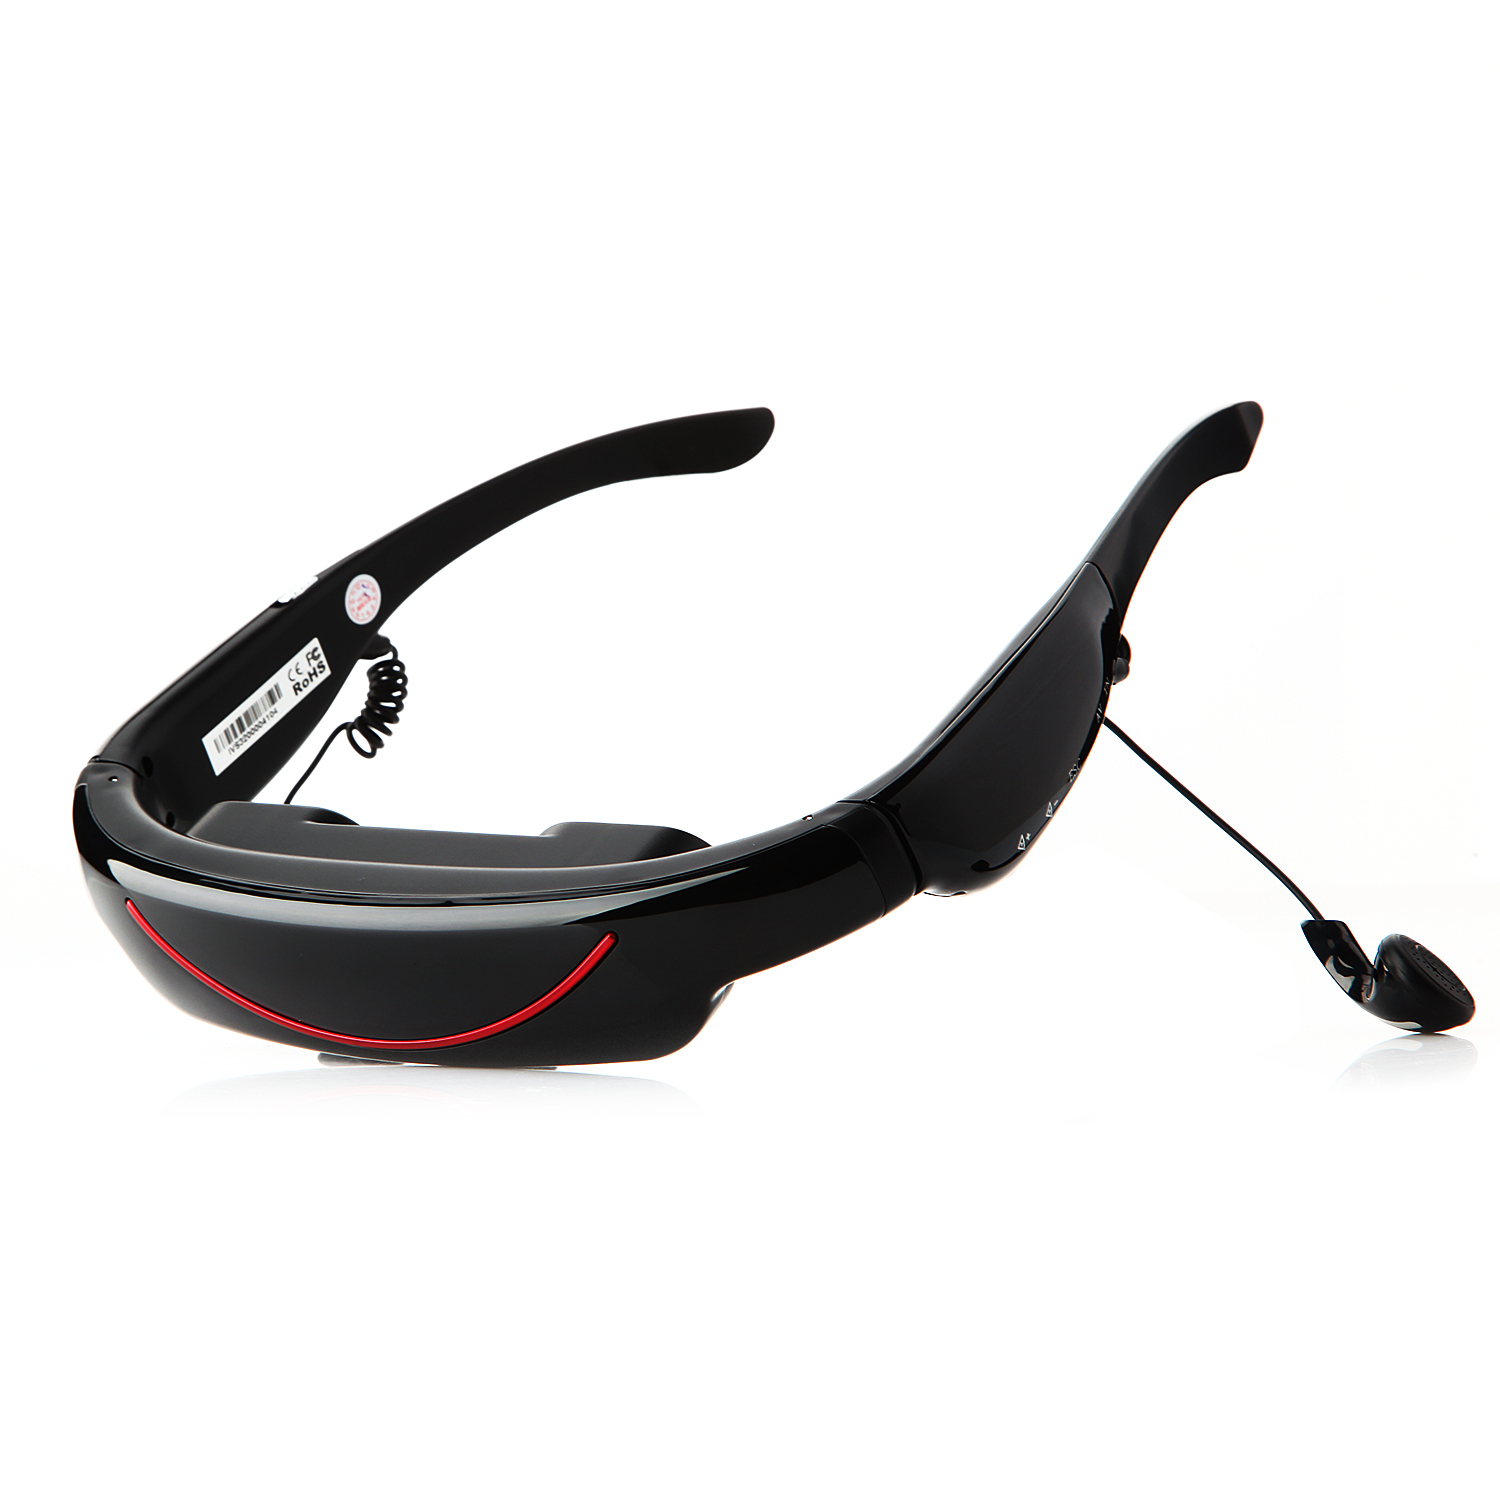 72 Inch 16:9 Wide Screen Virtual Video Glasses with AV Input 4GB Flash for iPhone iPad